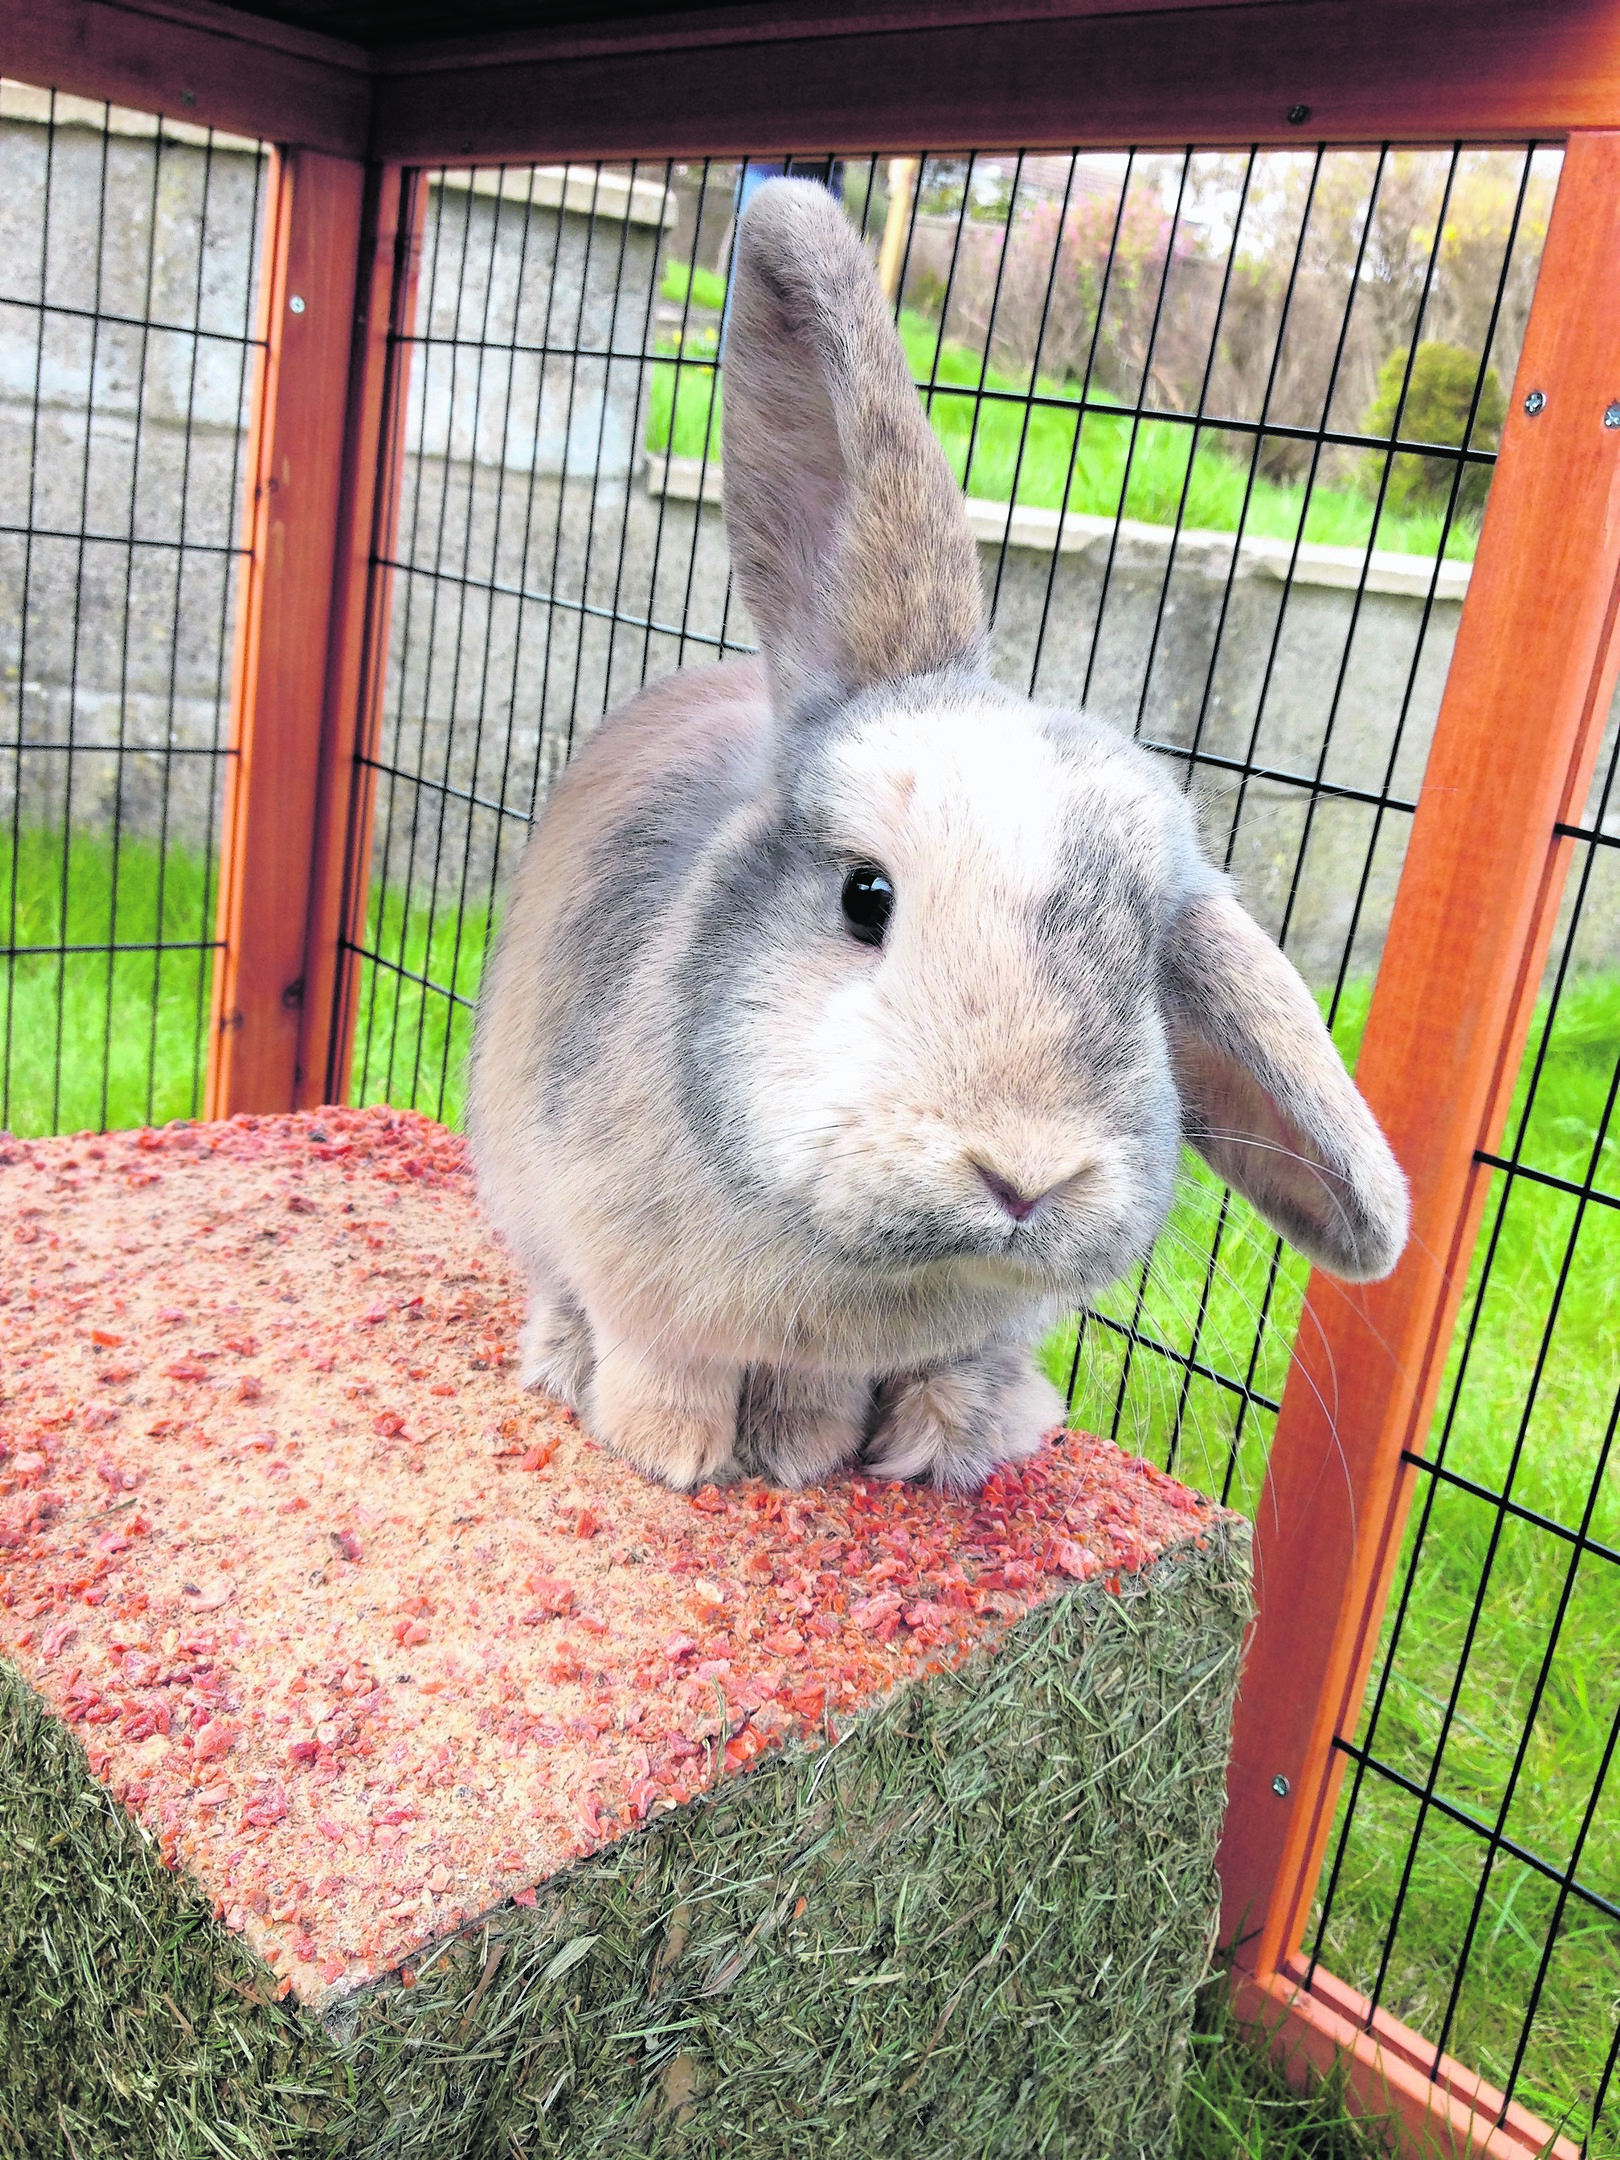 This is Pepper the rabbit who lives with Iris and Zander Main in Newtonhill. Pepper is our winner this week!